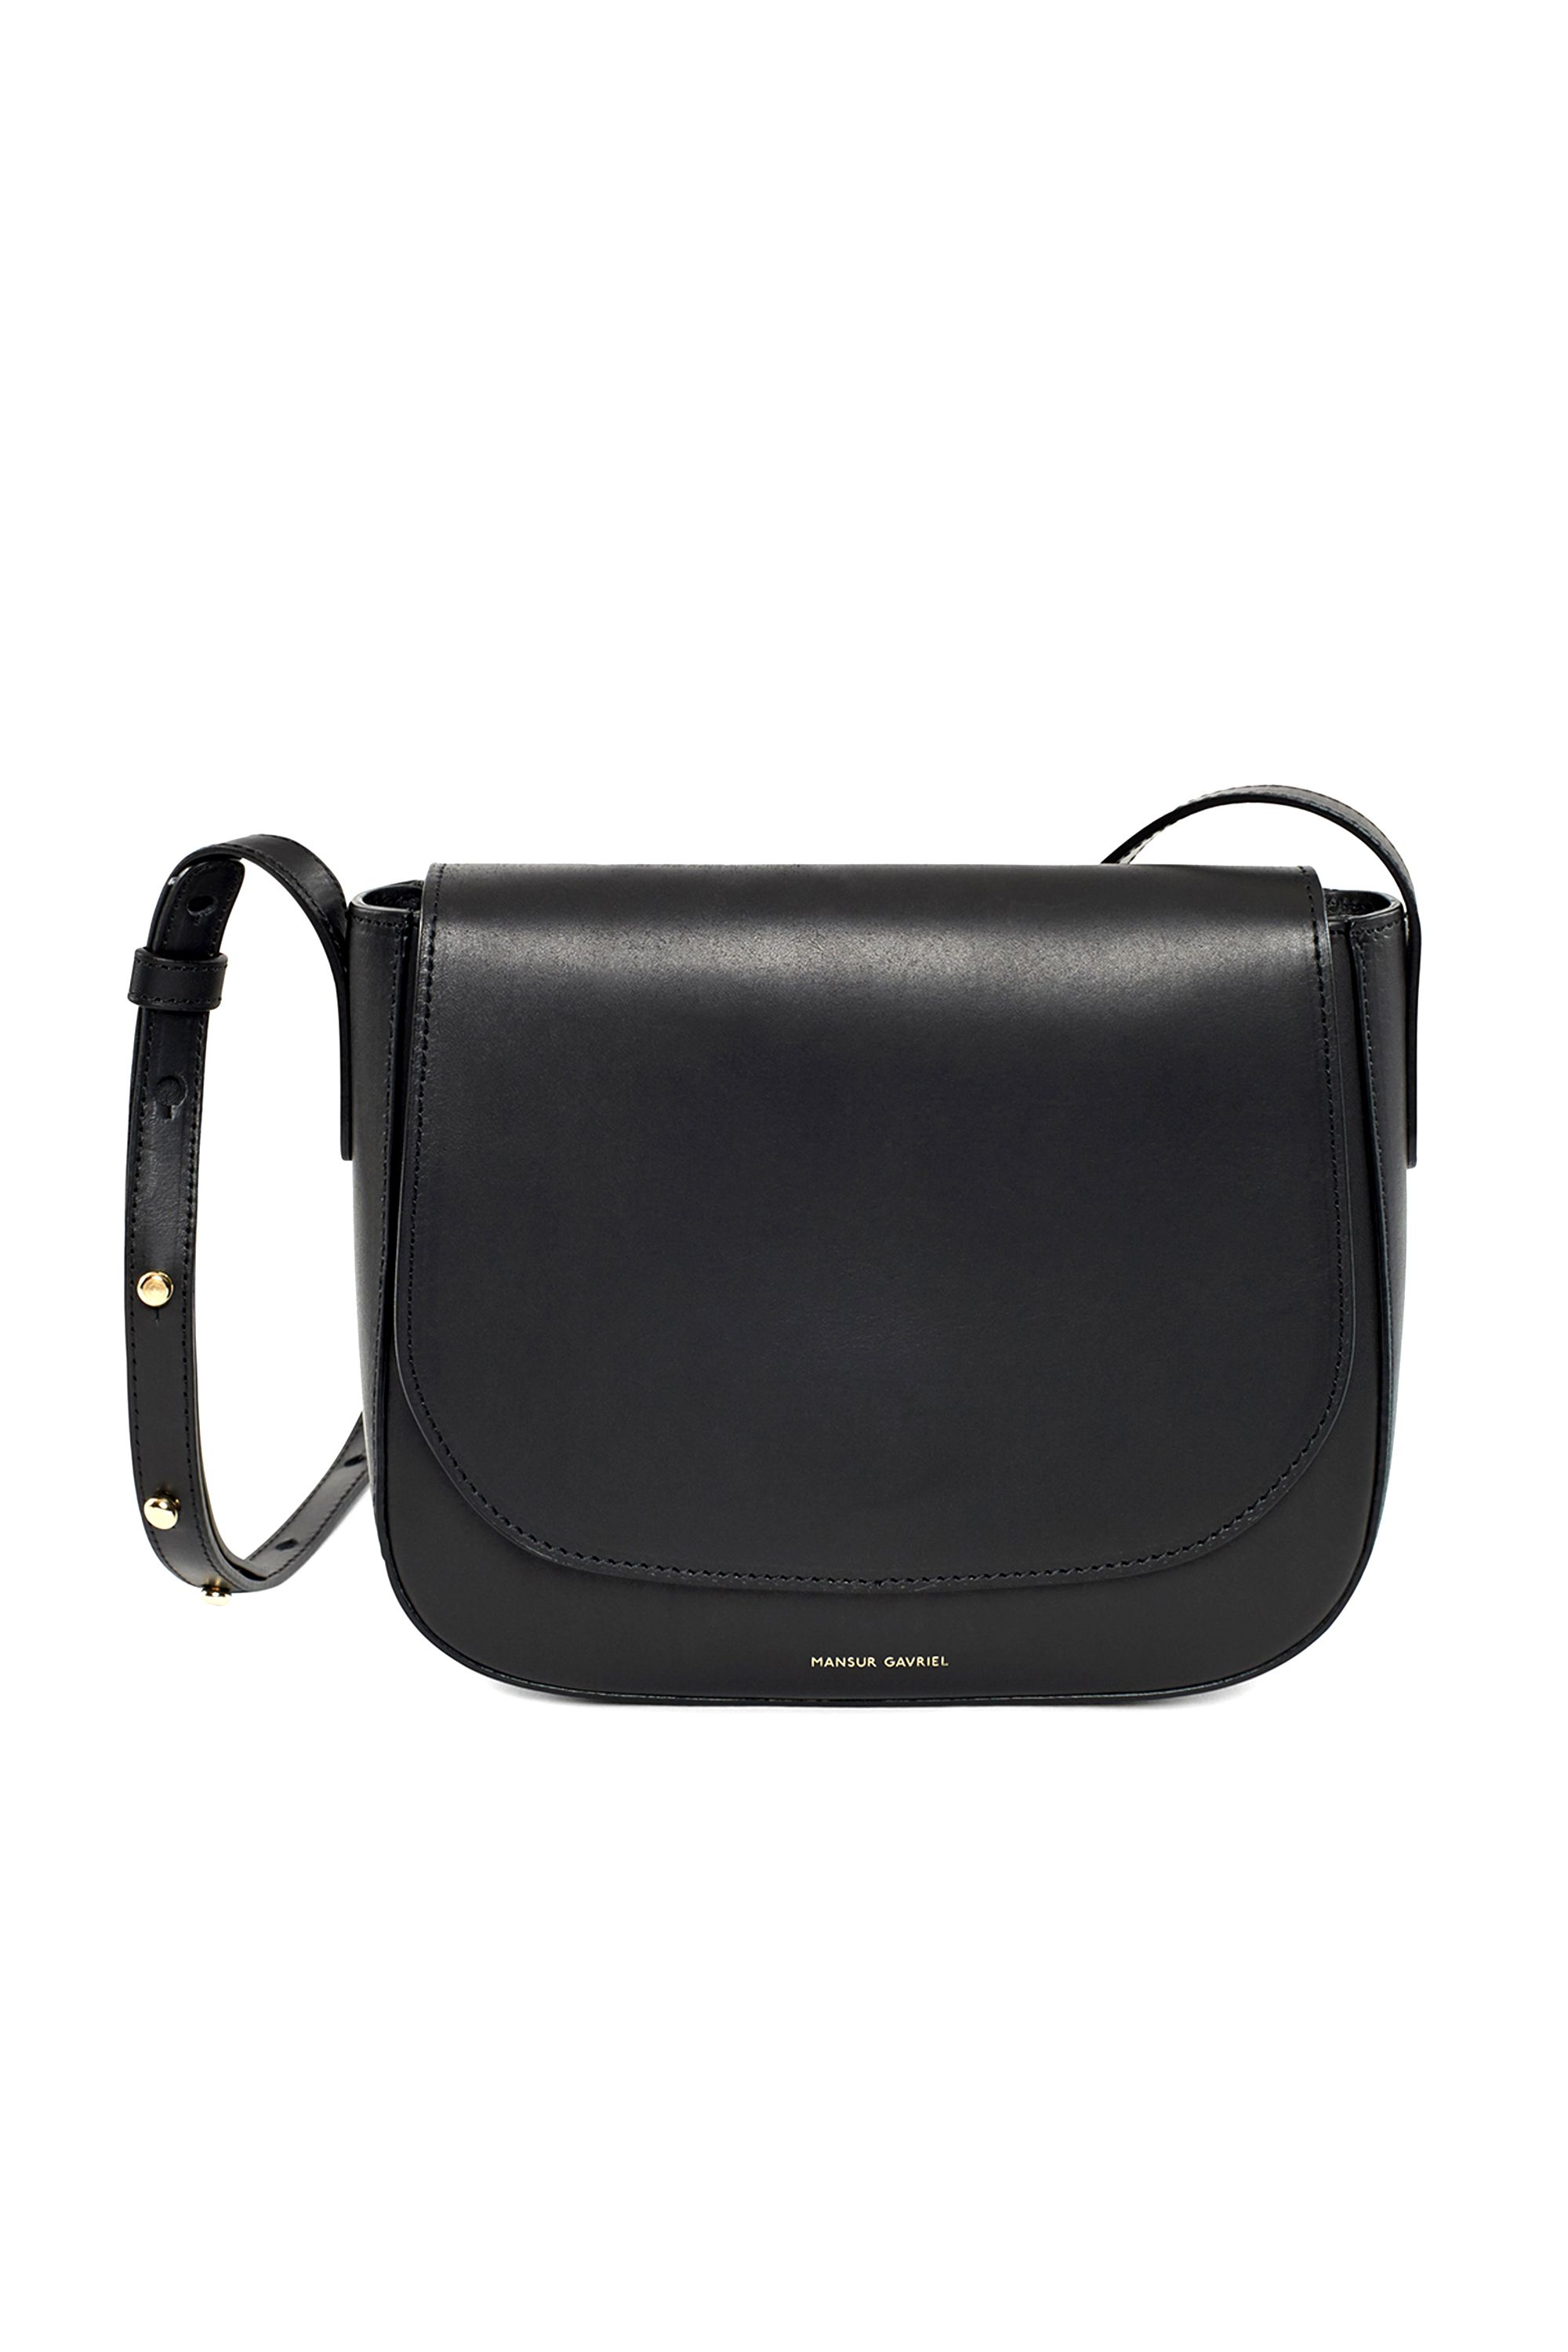 One of 20 Black Crossbody Bags That Work With Everything - MANSUR GAVRIEL  ( ) 7d9cf0ac677c5